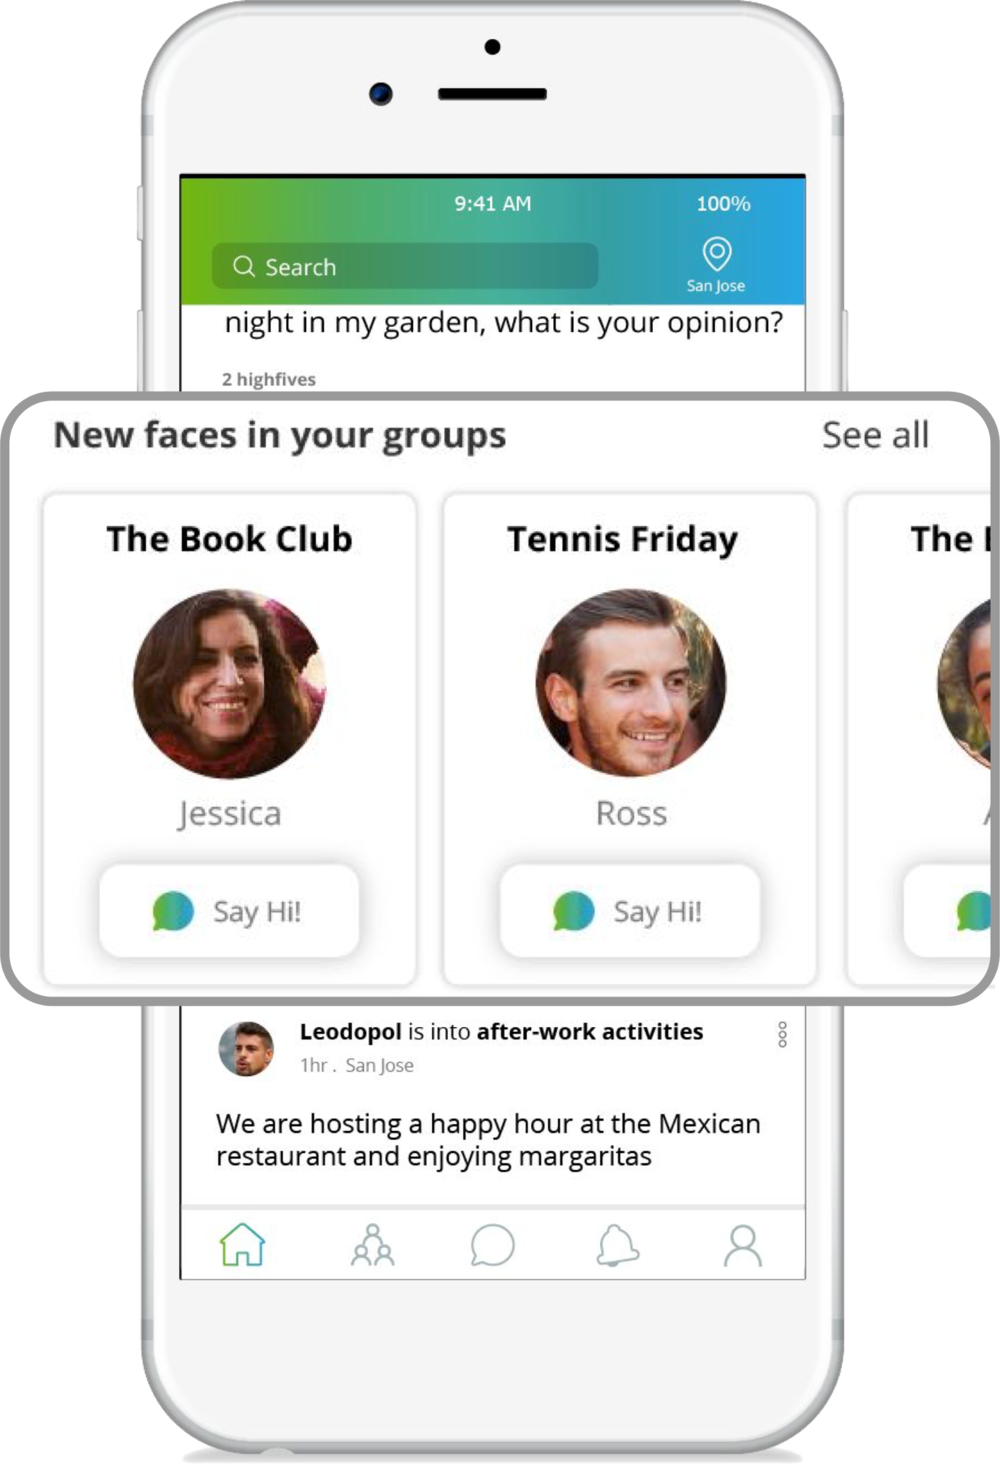 On-boarding is madeeasy and fun with groupsand events -